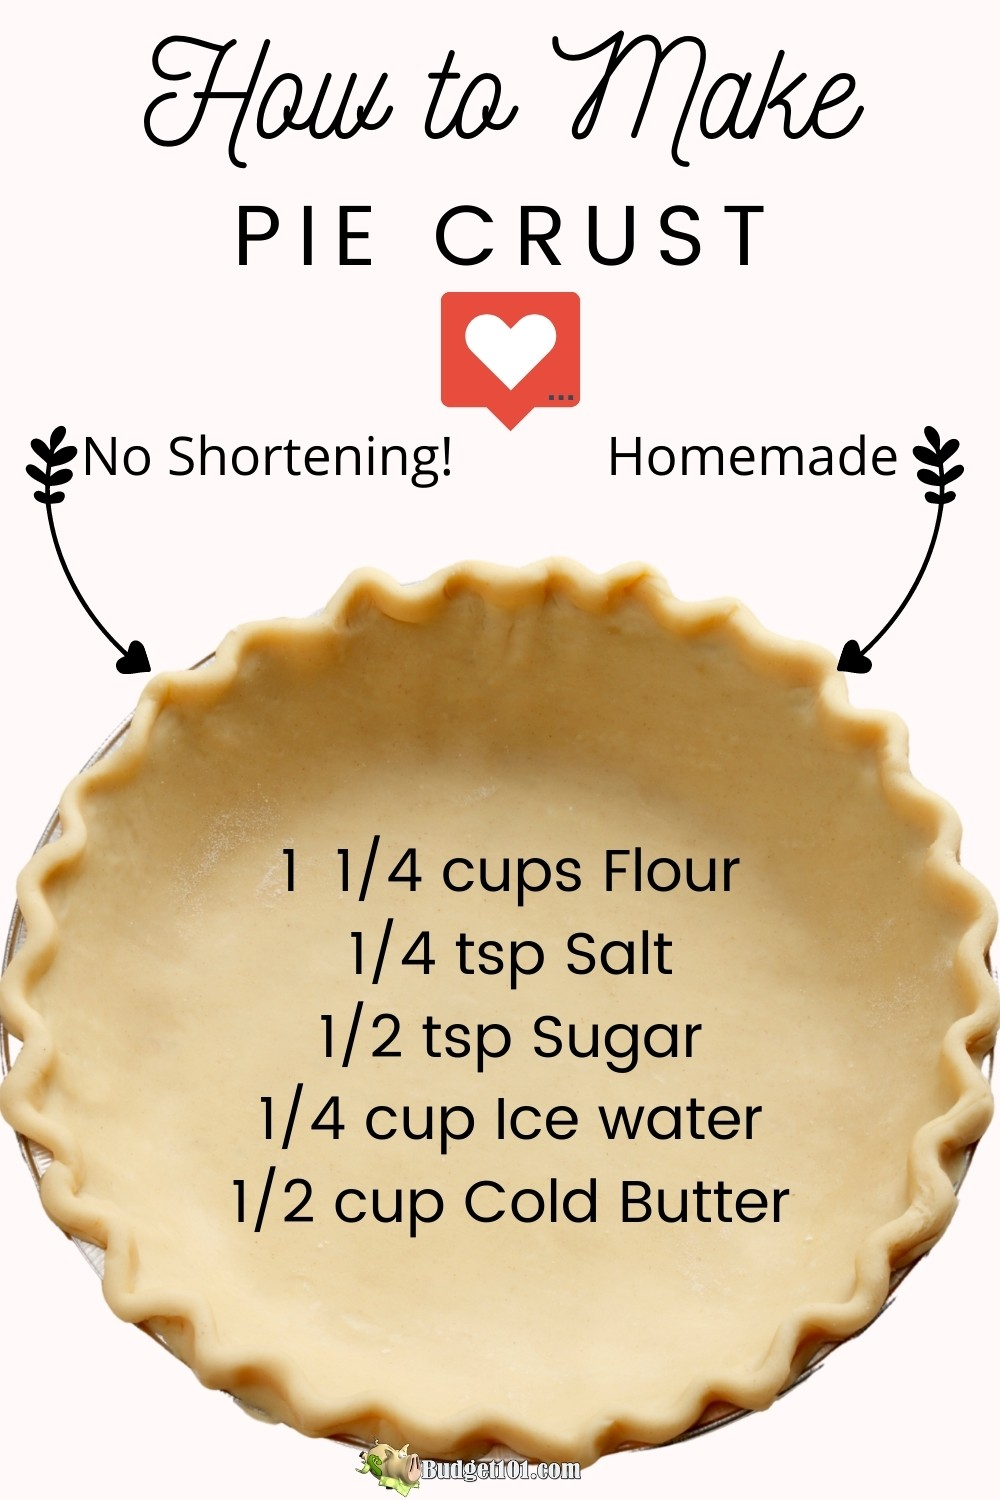 How to make an All Butter Pie Crust for perfect pie every single time, light, buttery, flaky and delicious! #MYO #makeyourown #Homemade #Piecrust #HolidayBaking #Budget101